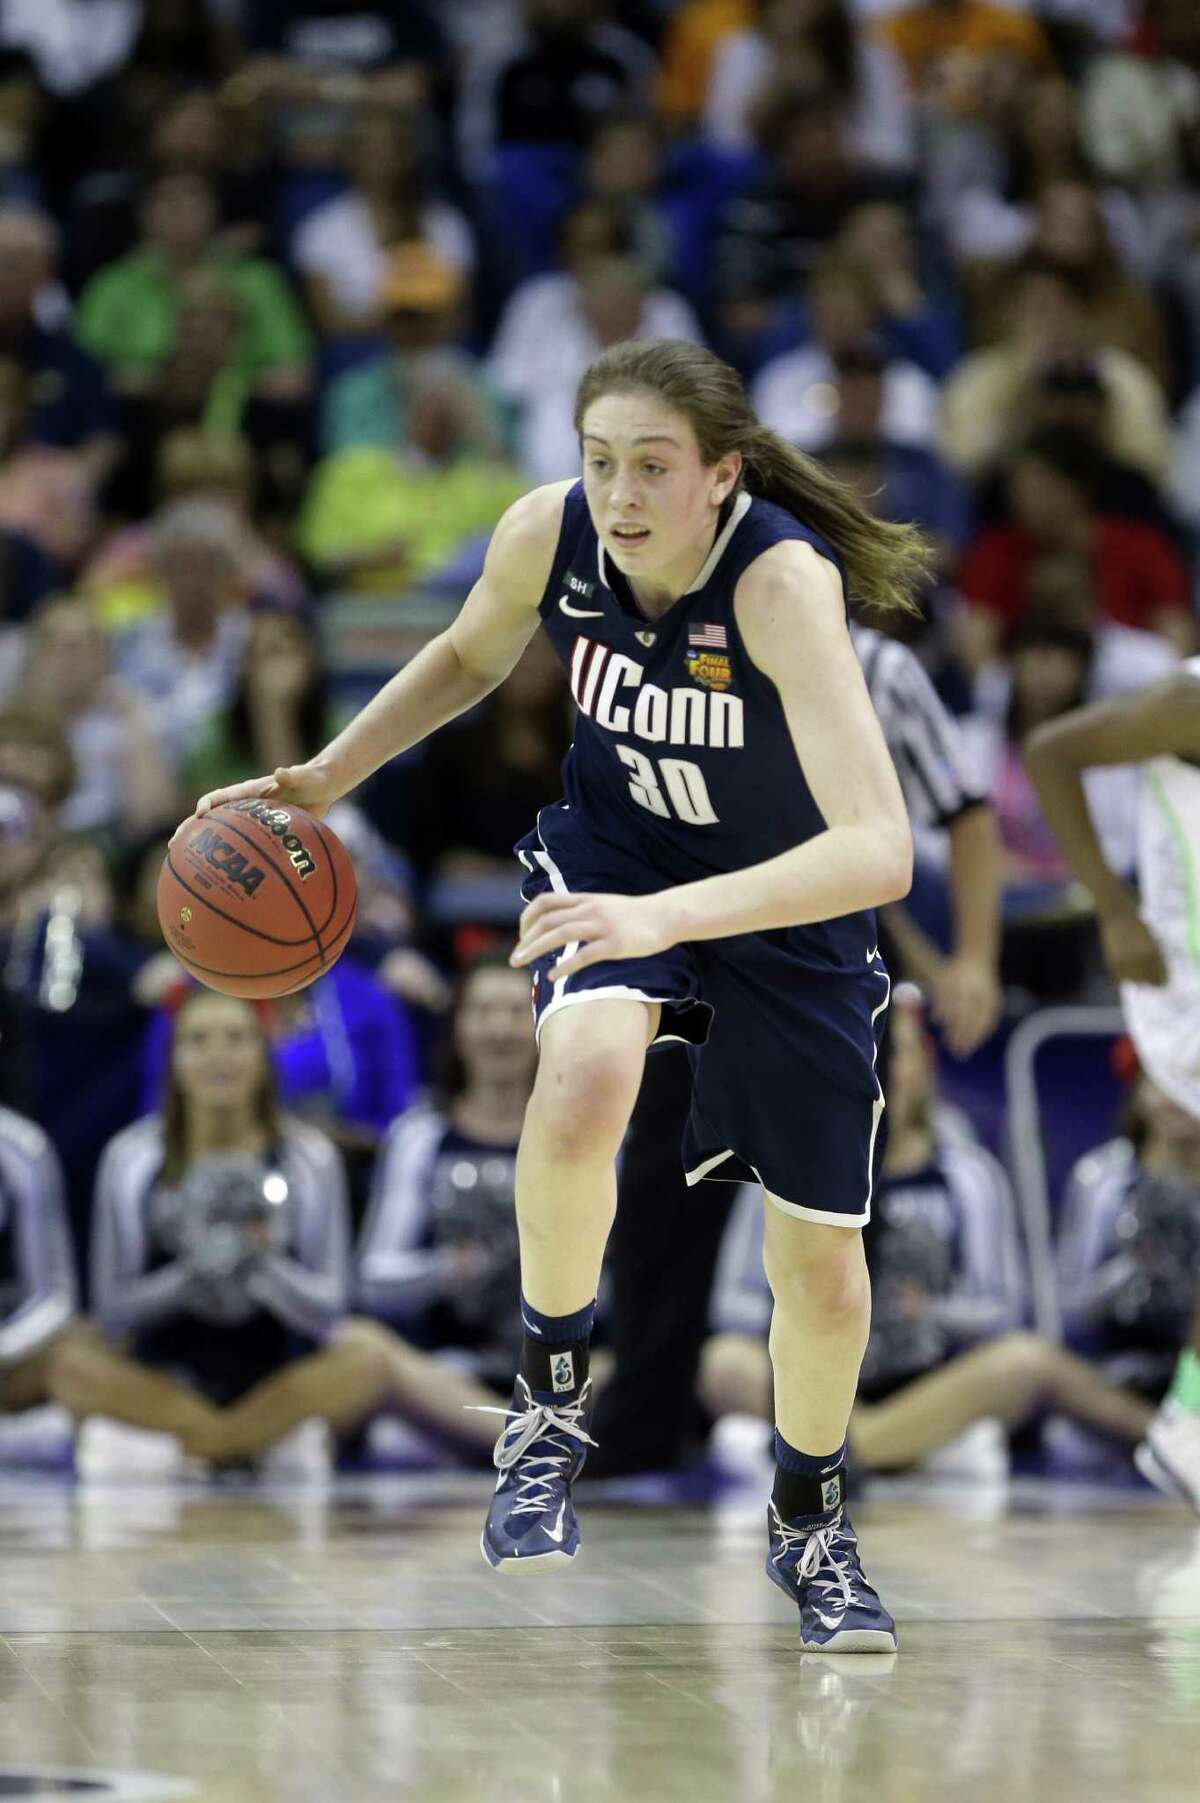 UConn's Breanna Stewart has scored 82 points in four tourney games after sitting out in the first round.